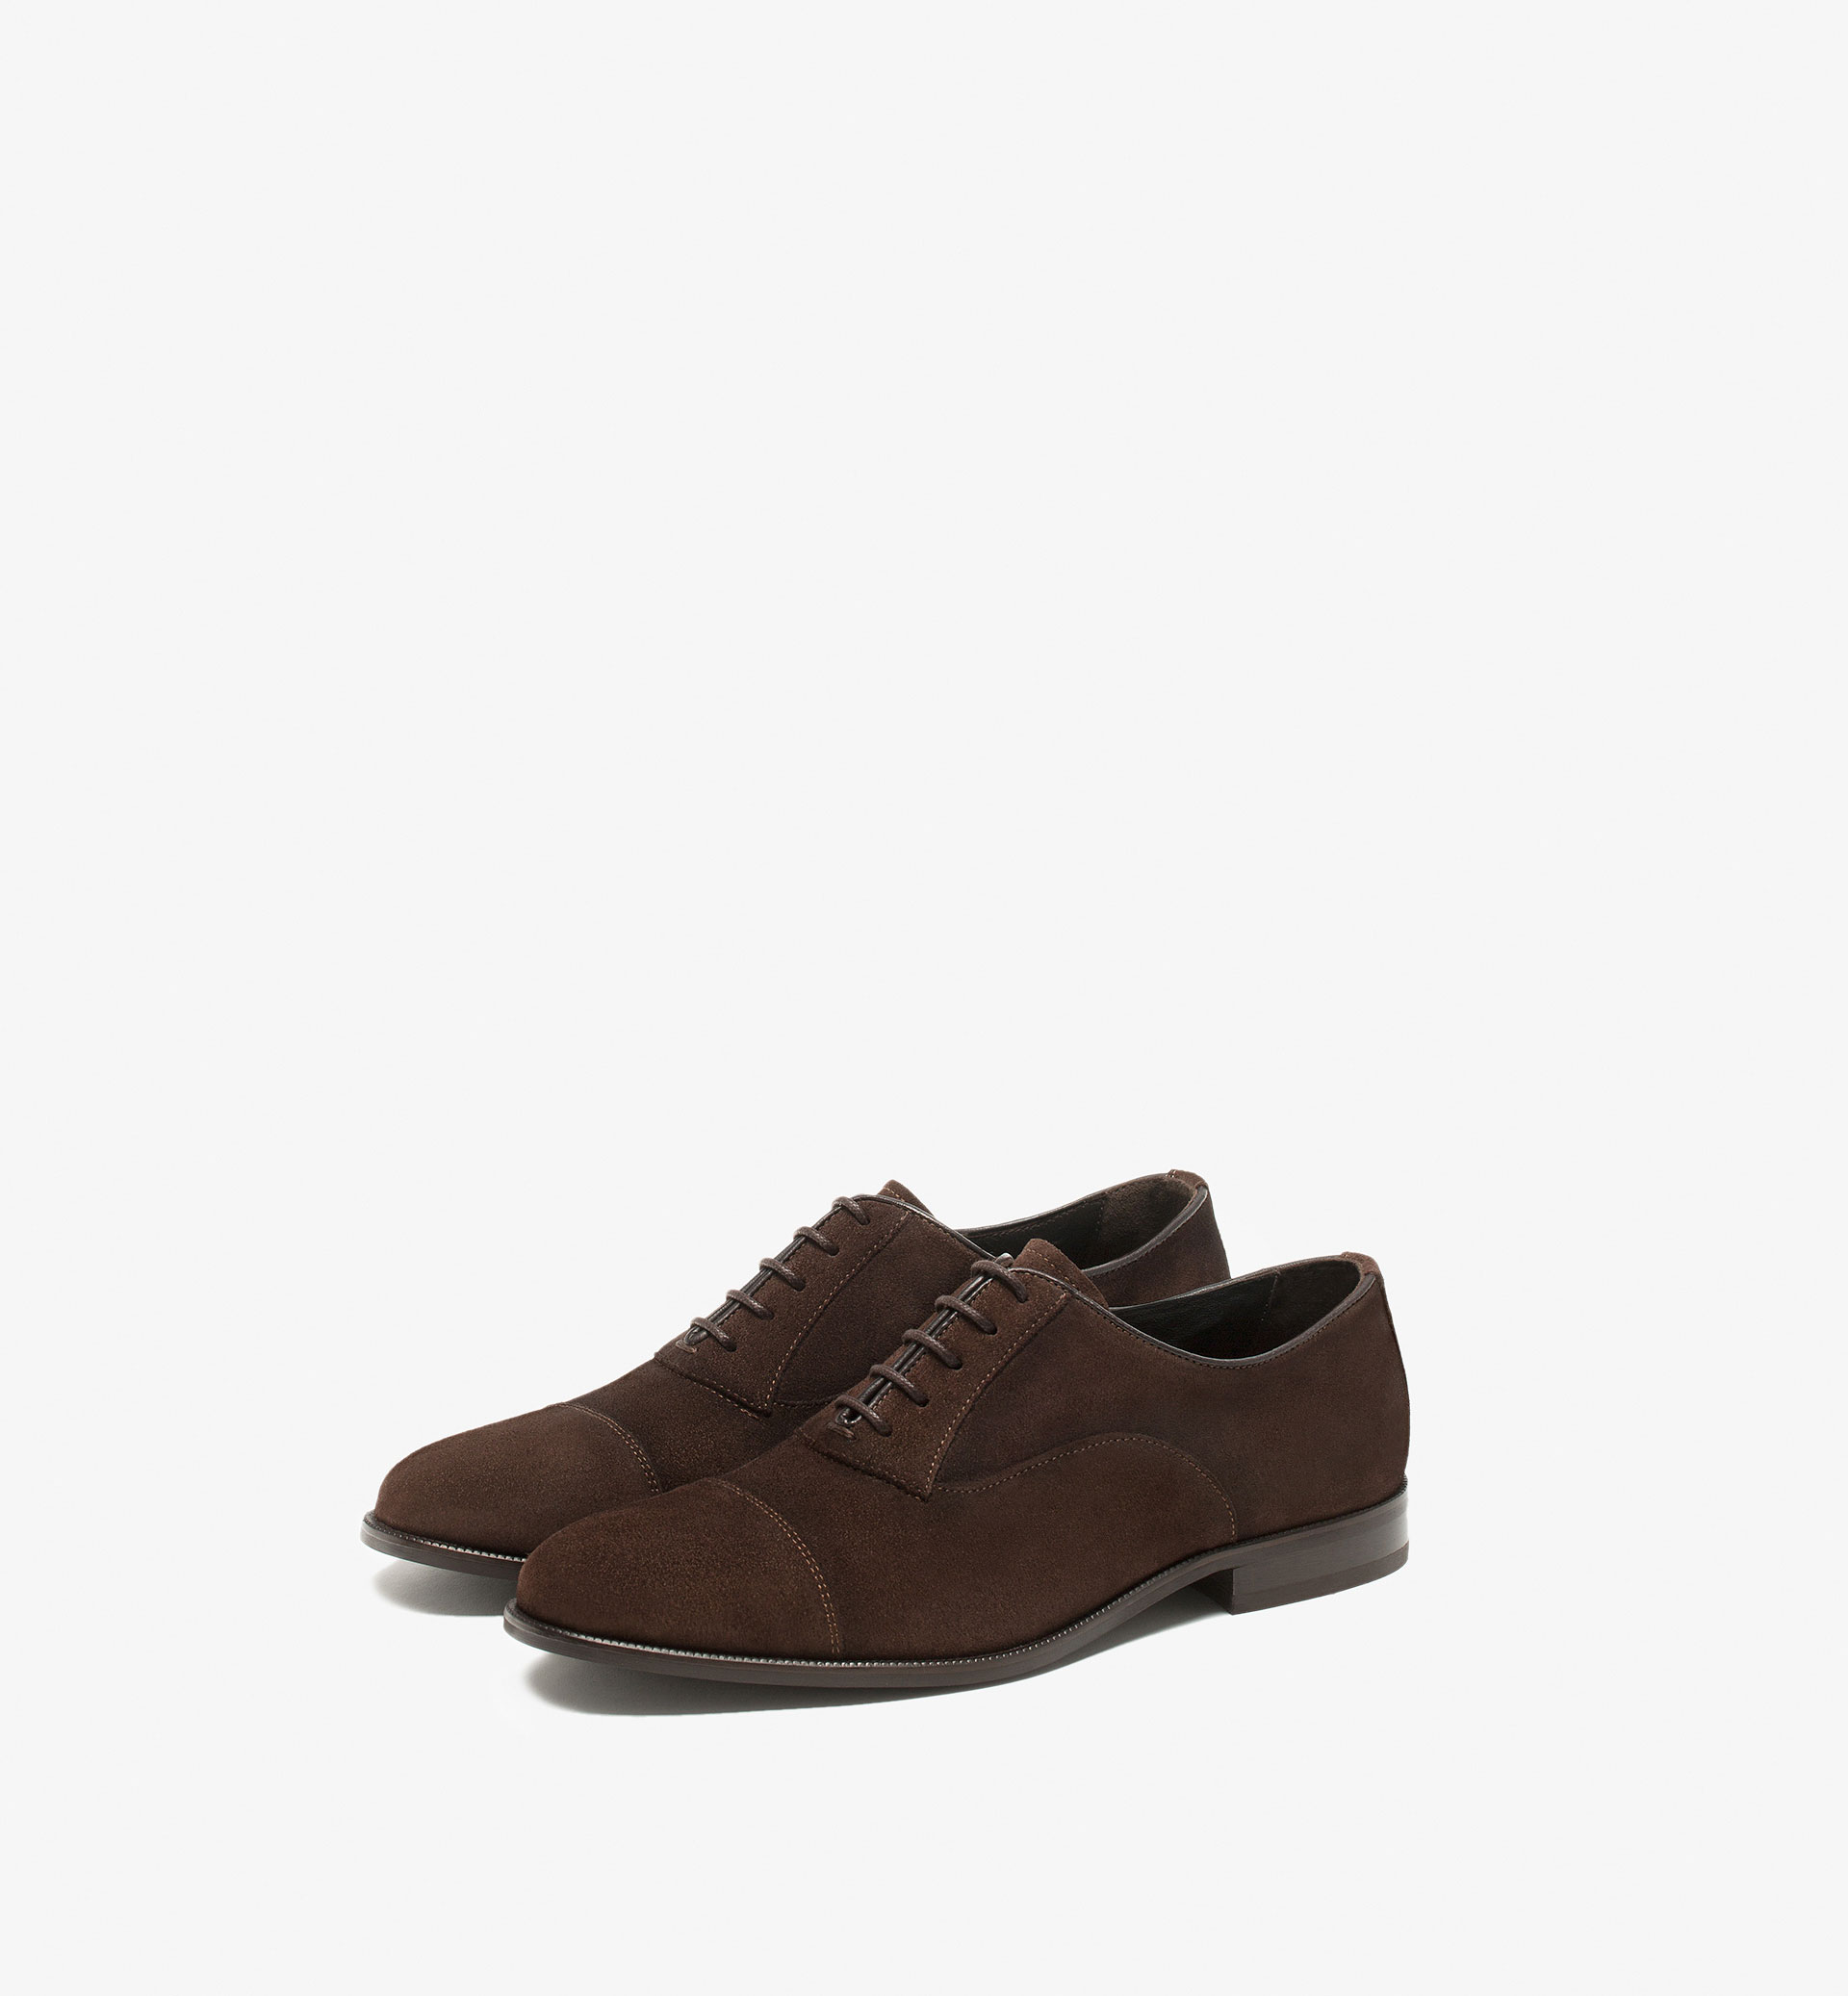 BROWN SPLIT SUEDE OXFORD SHOES